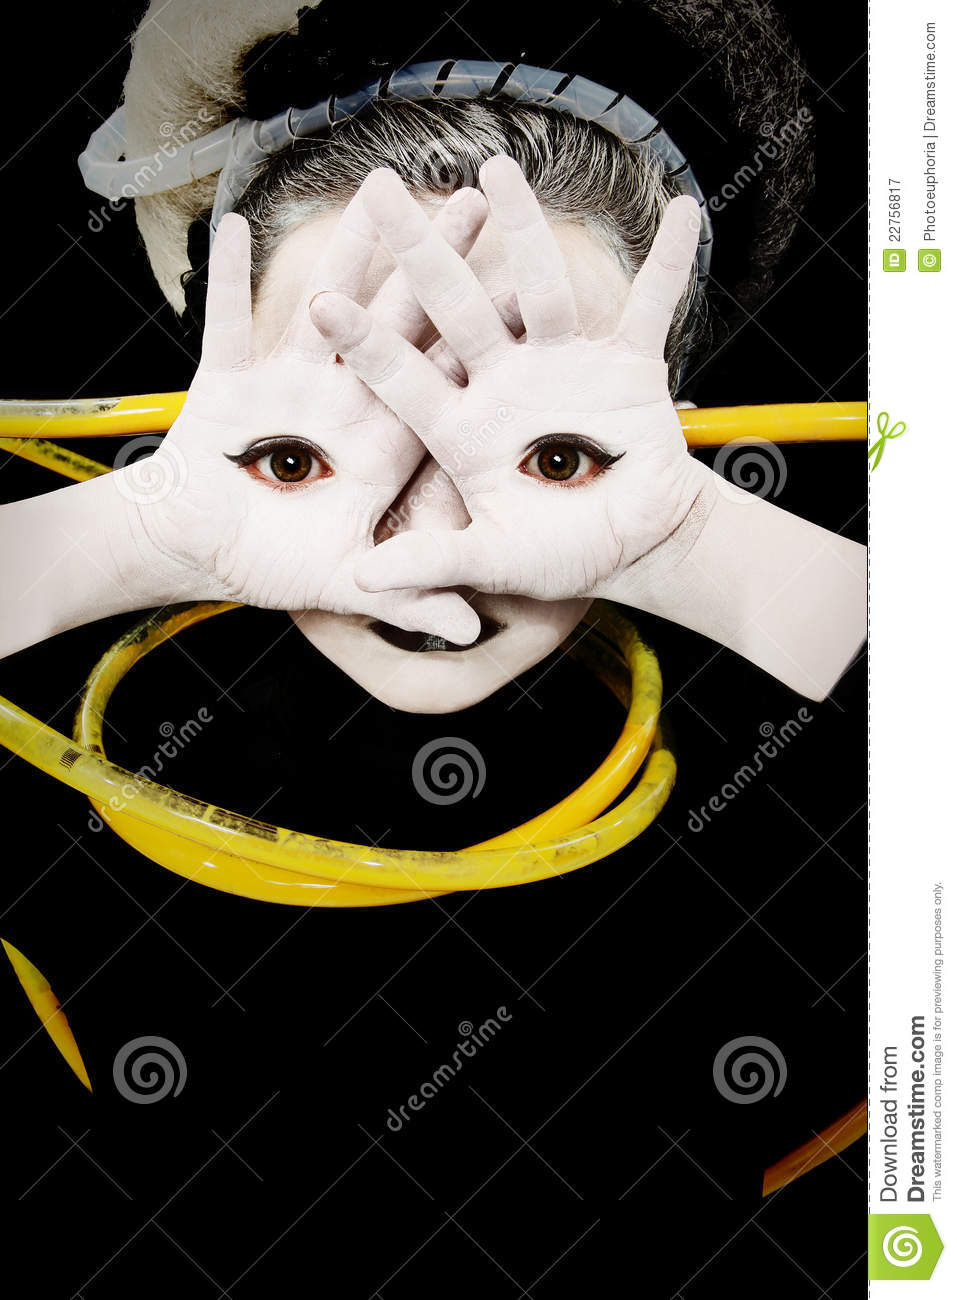 Alien Girl Child with Eyes on Palms of Hands